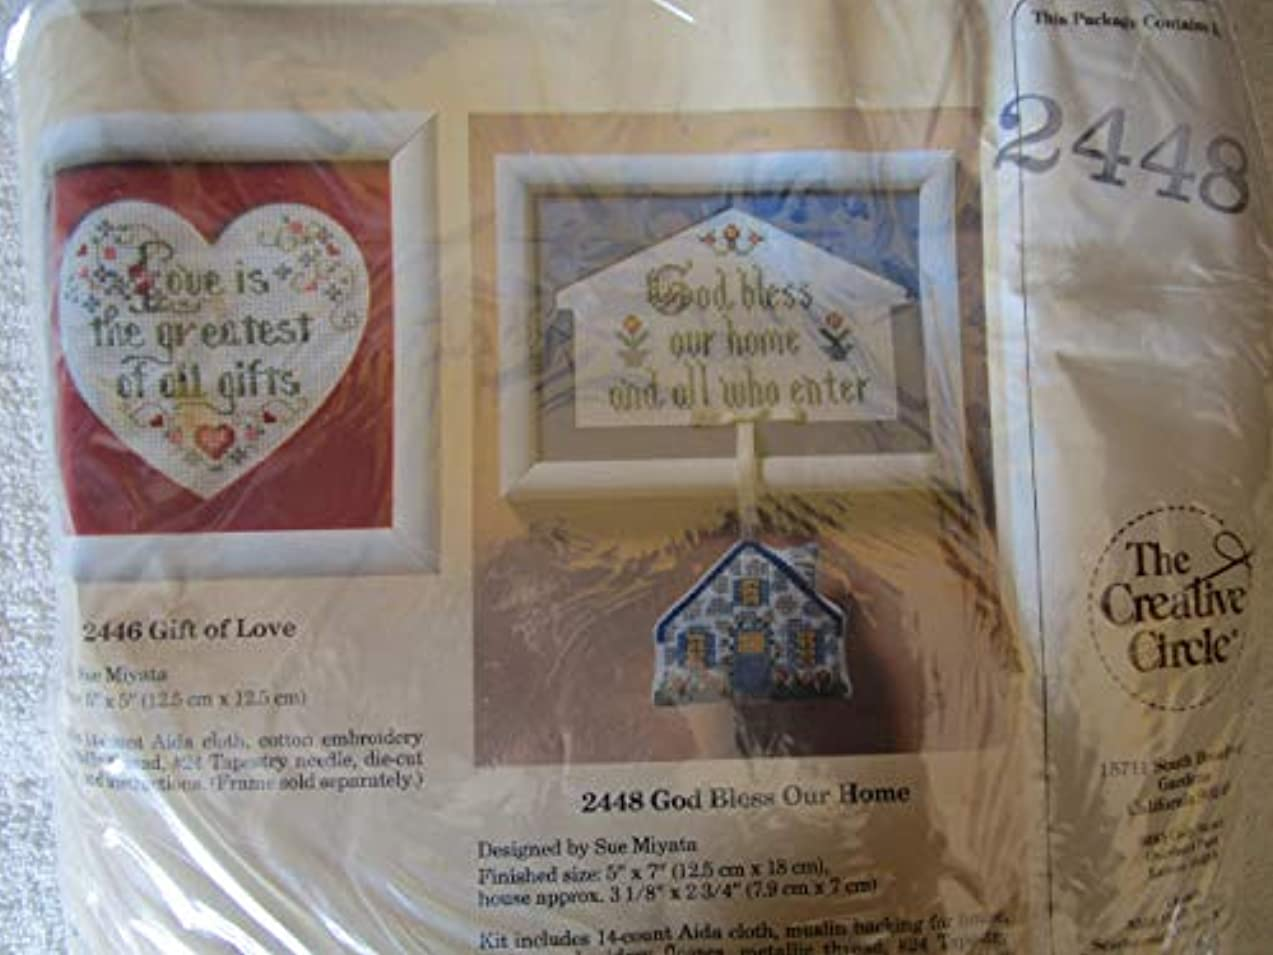 (USA Warehouse) God Bless our Home and All Who Enter #2448 - 1988 Cross Stitch Kit; House and Frame / ? Designed by Sue Miyata. ? Finished size of Framed House: 5